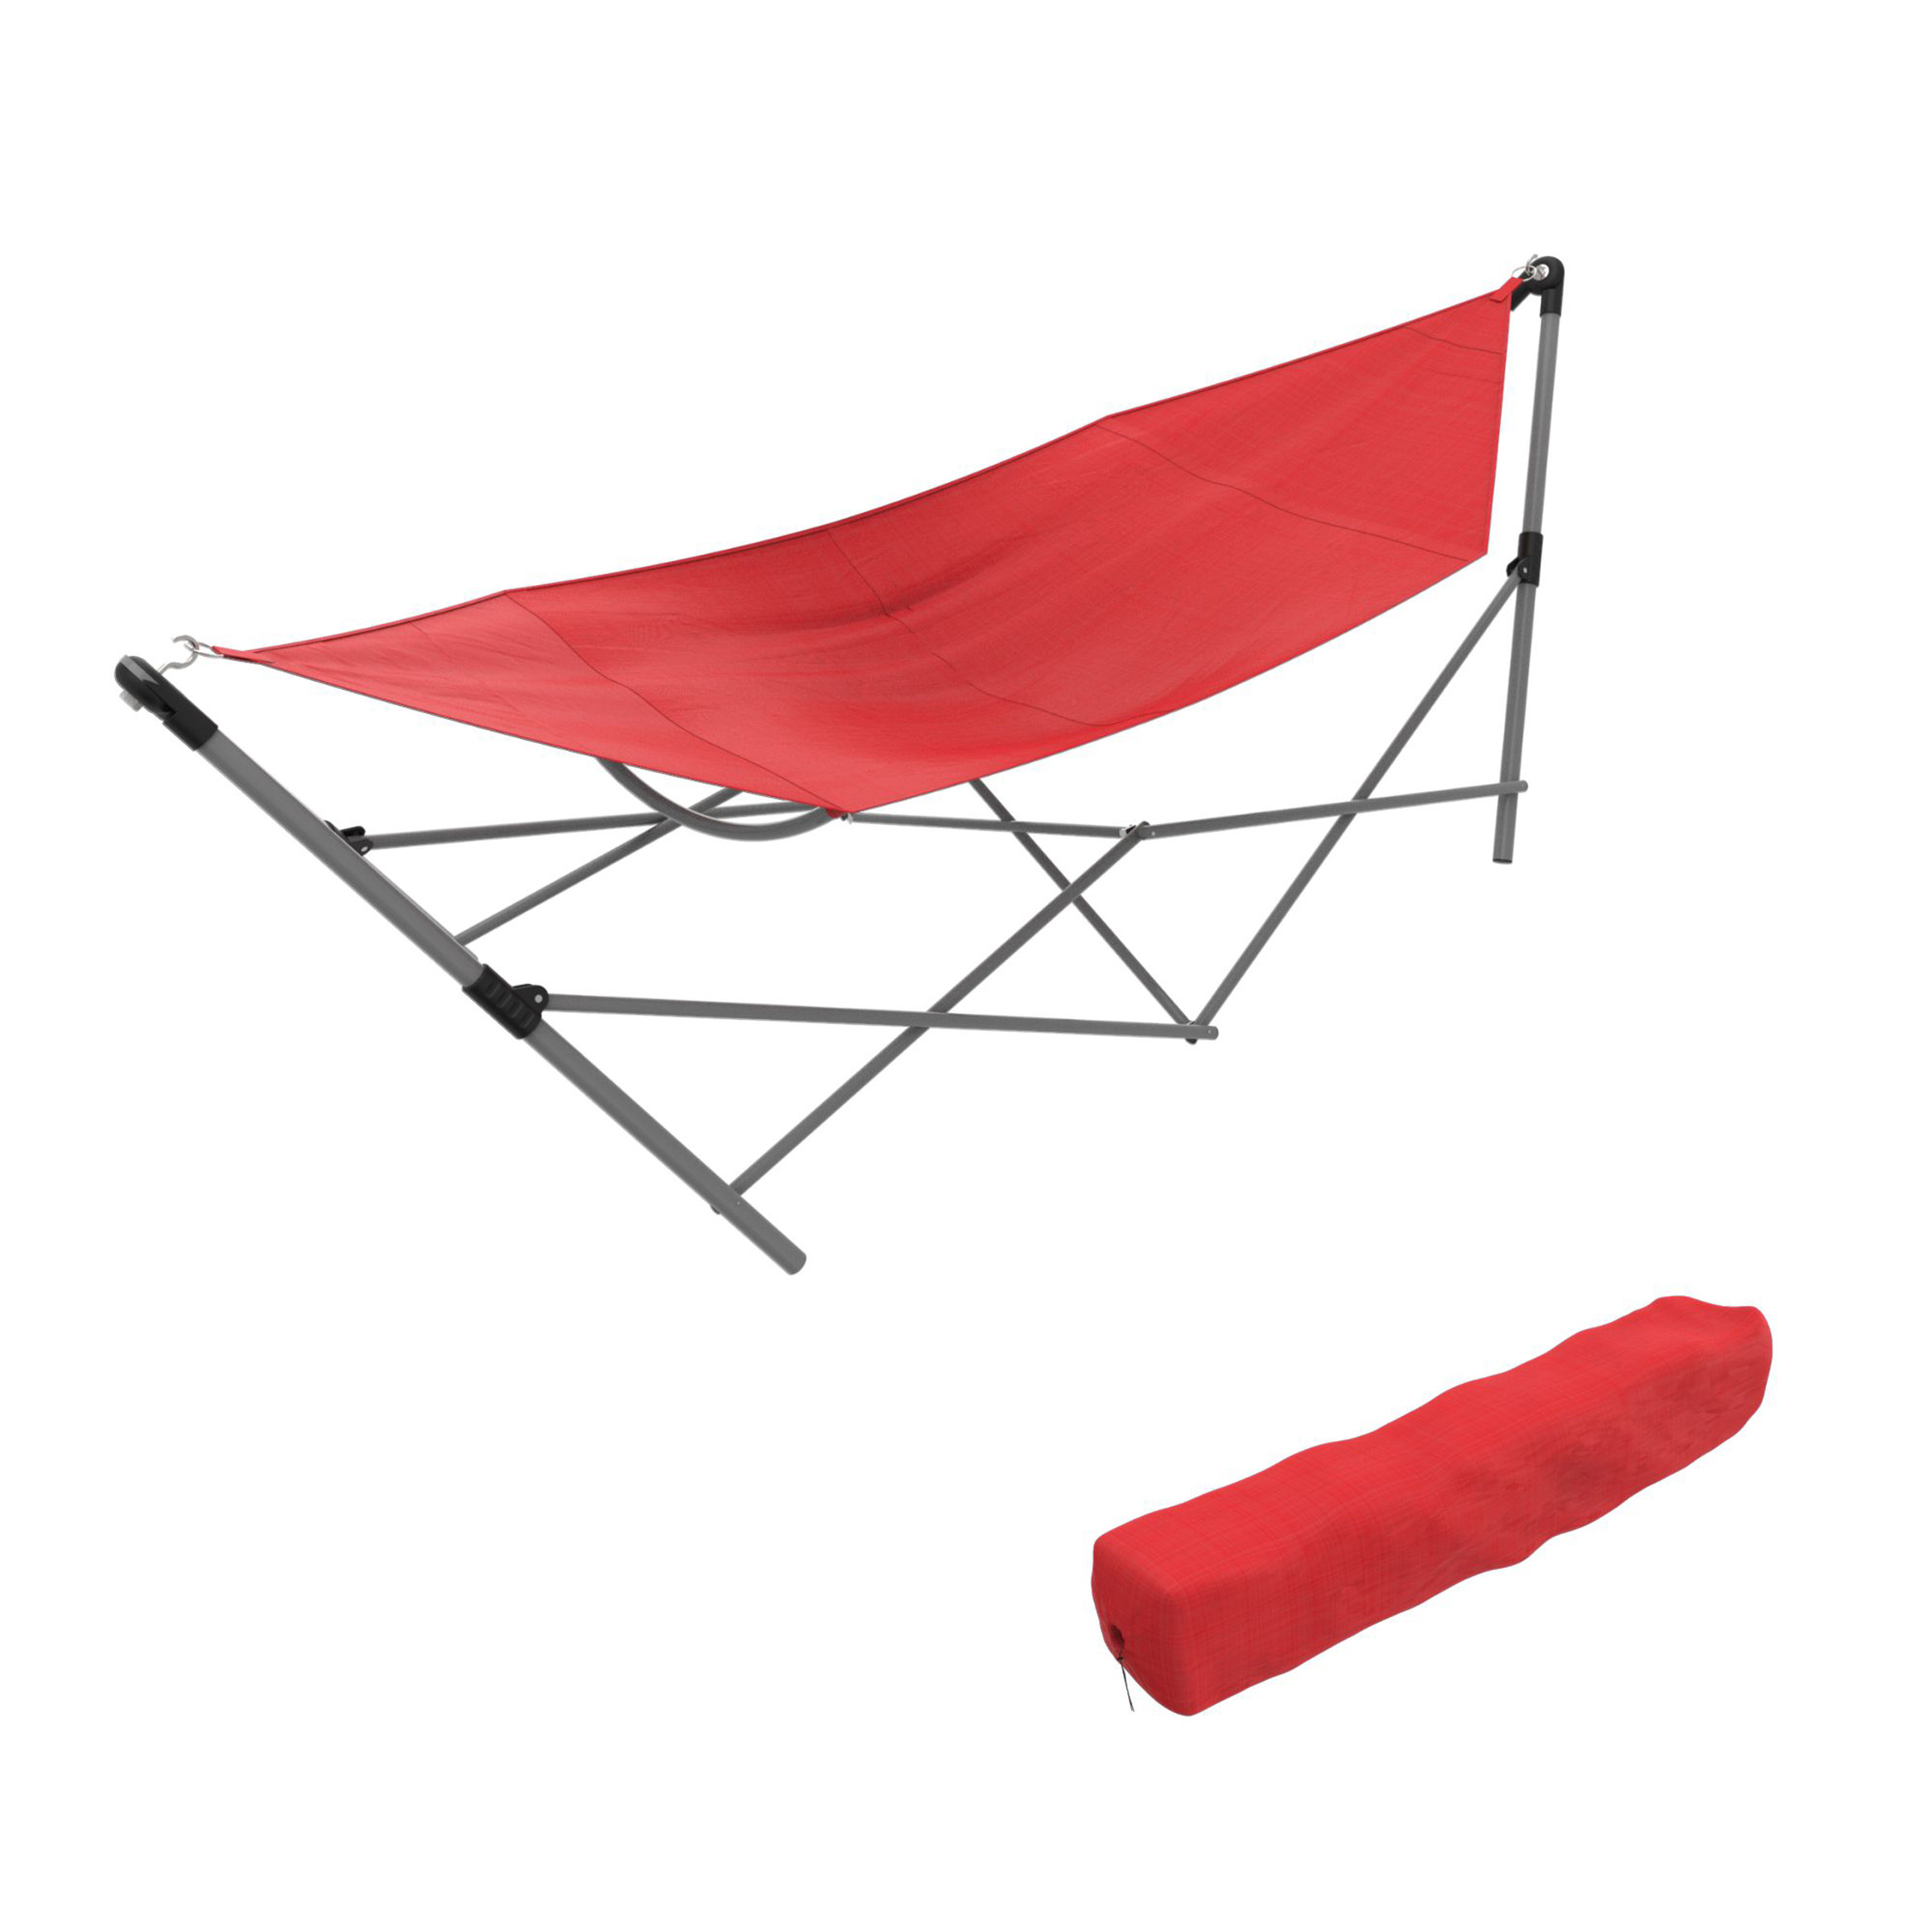 Portable Hammock with Stand-Folds and Fits into Included Carry Bag by Pure Garden -Black